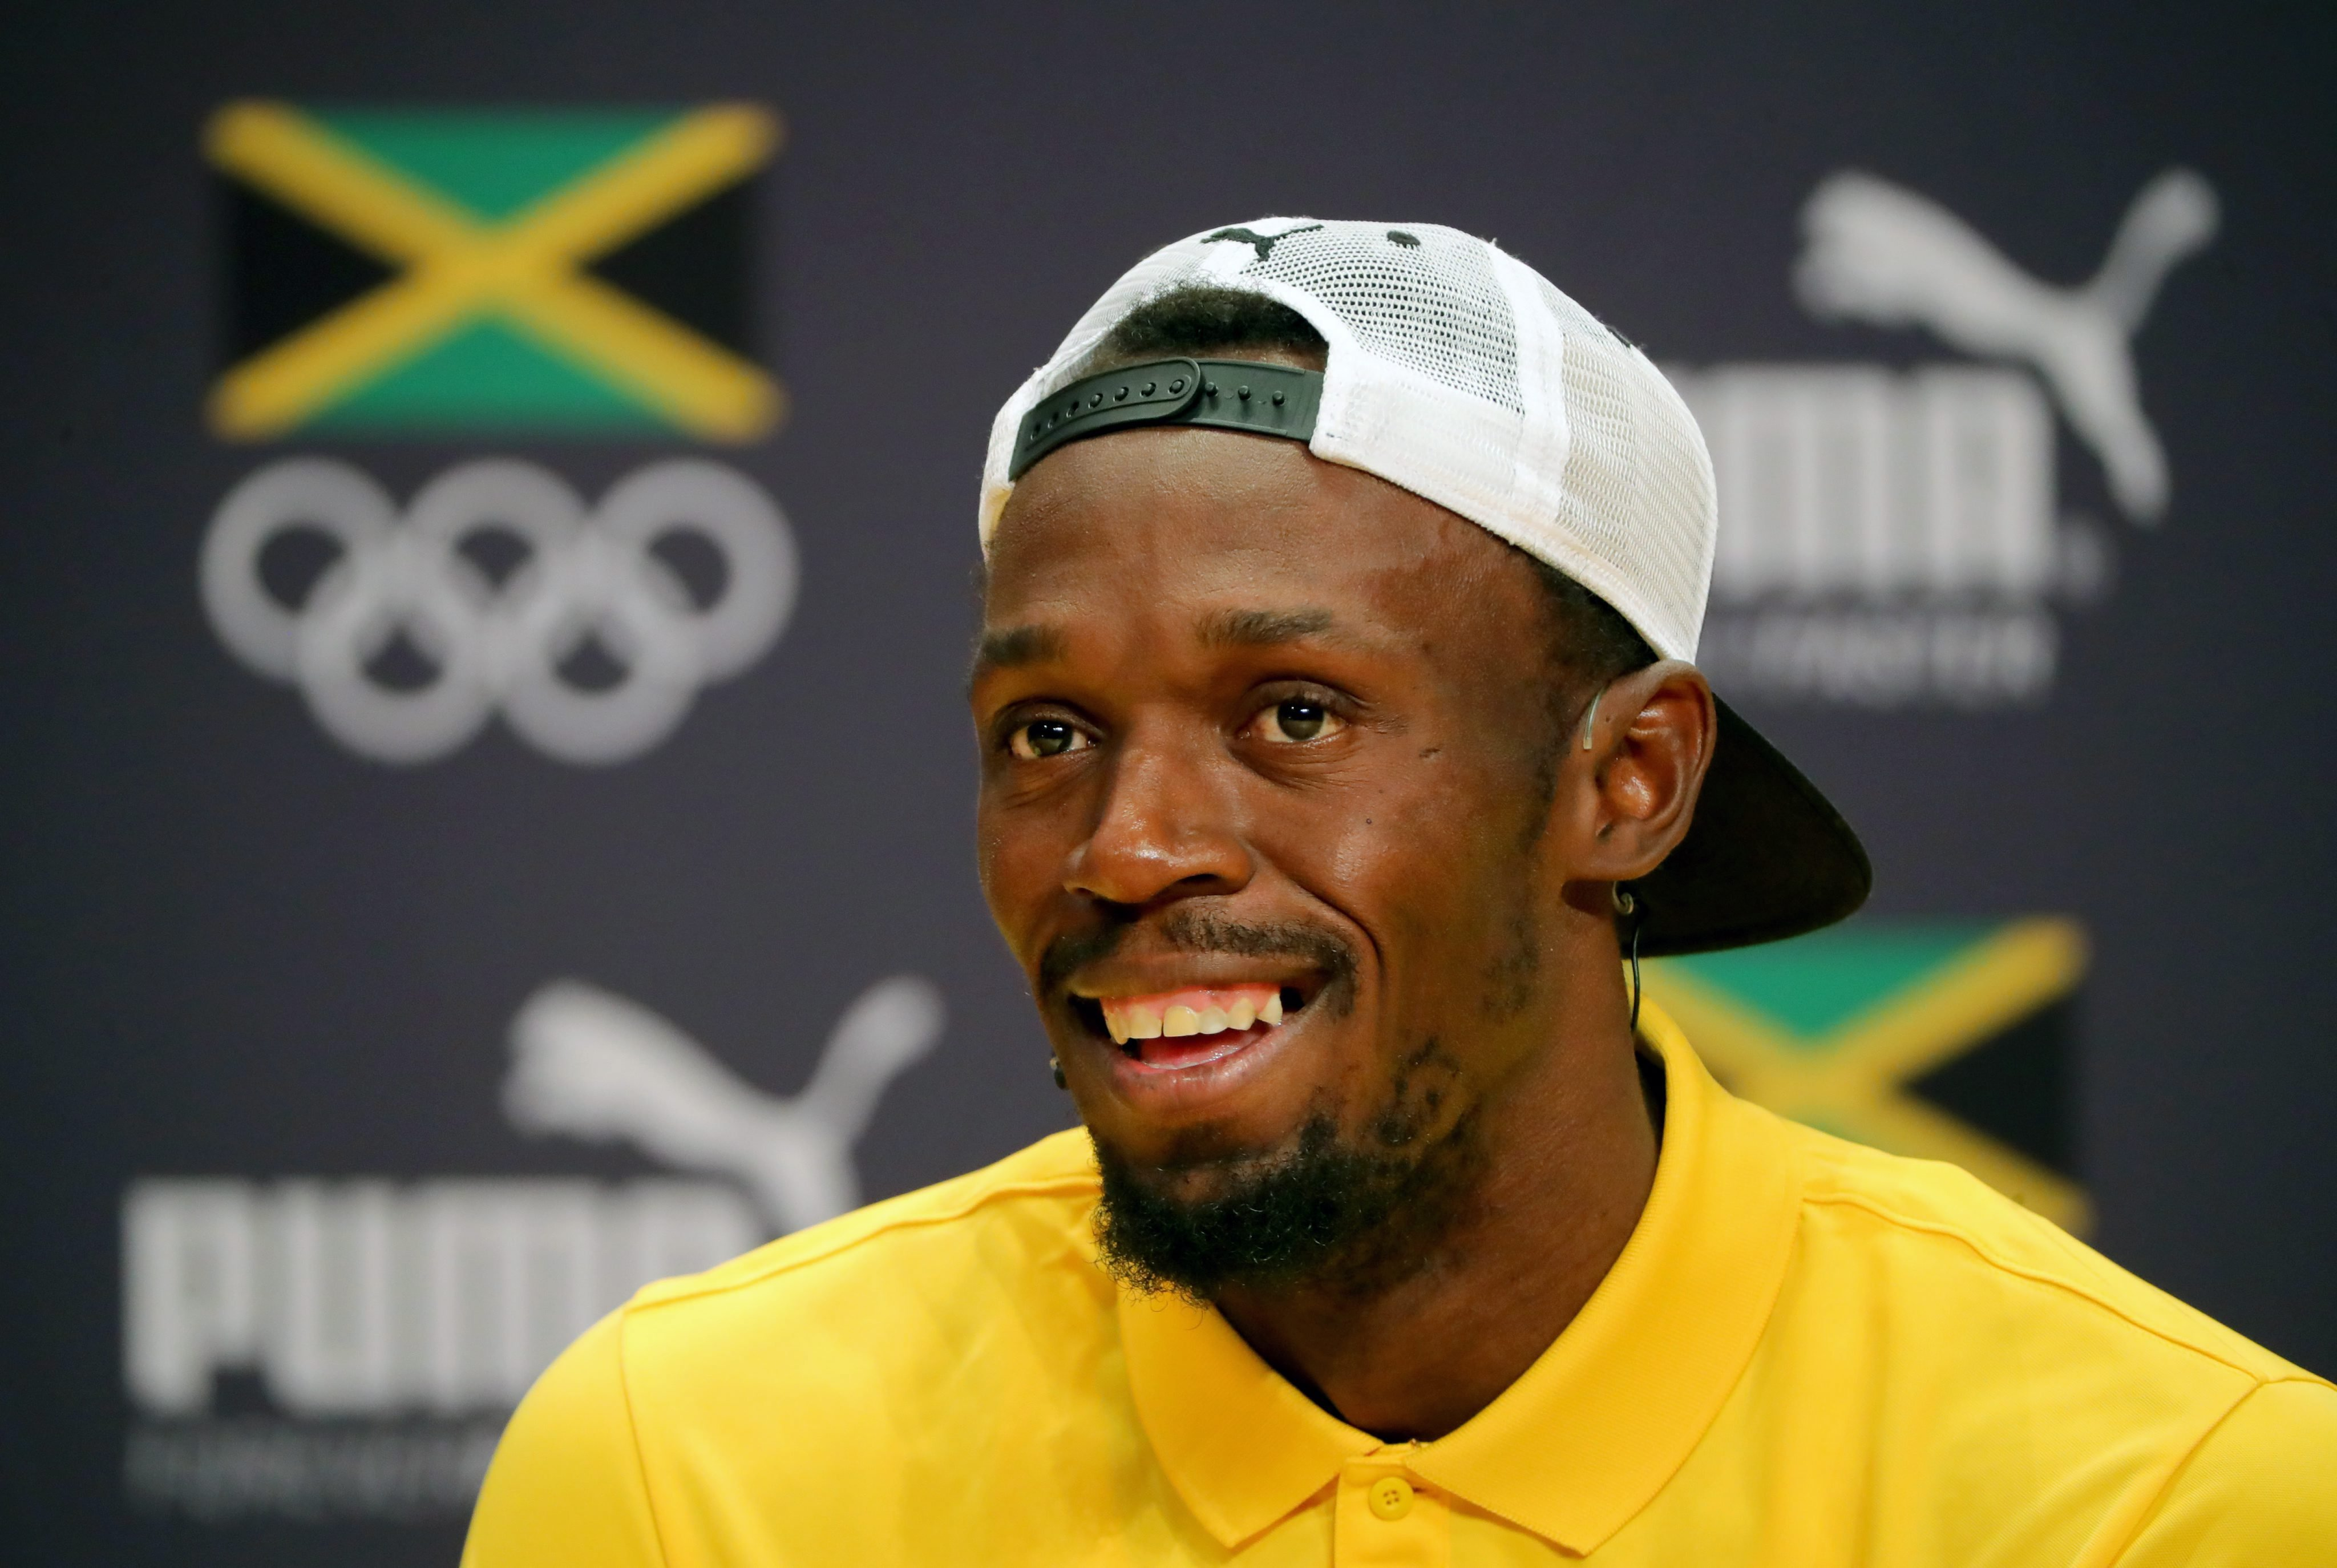 Usain Bolt attends a press conference during the Rio 2016 Olympic Games, on Aug. 8, 2016.